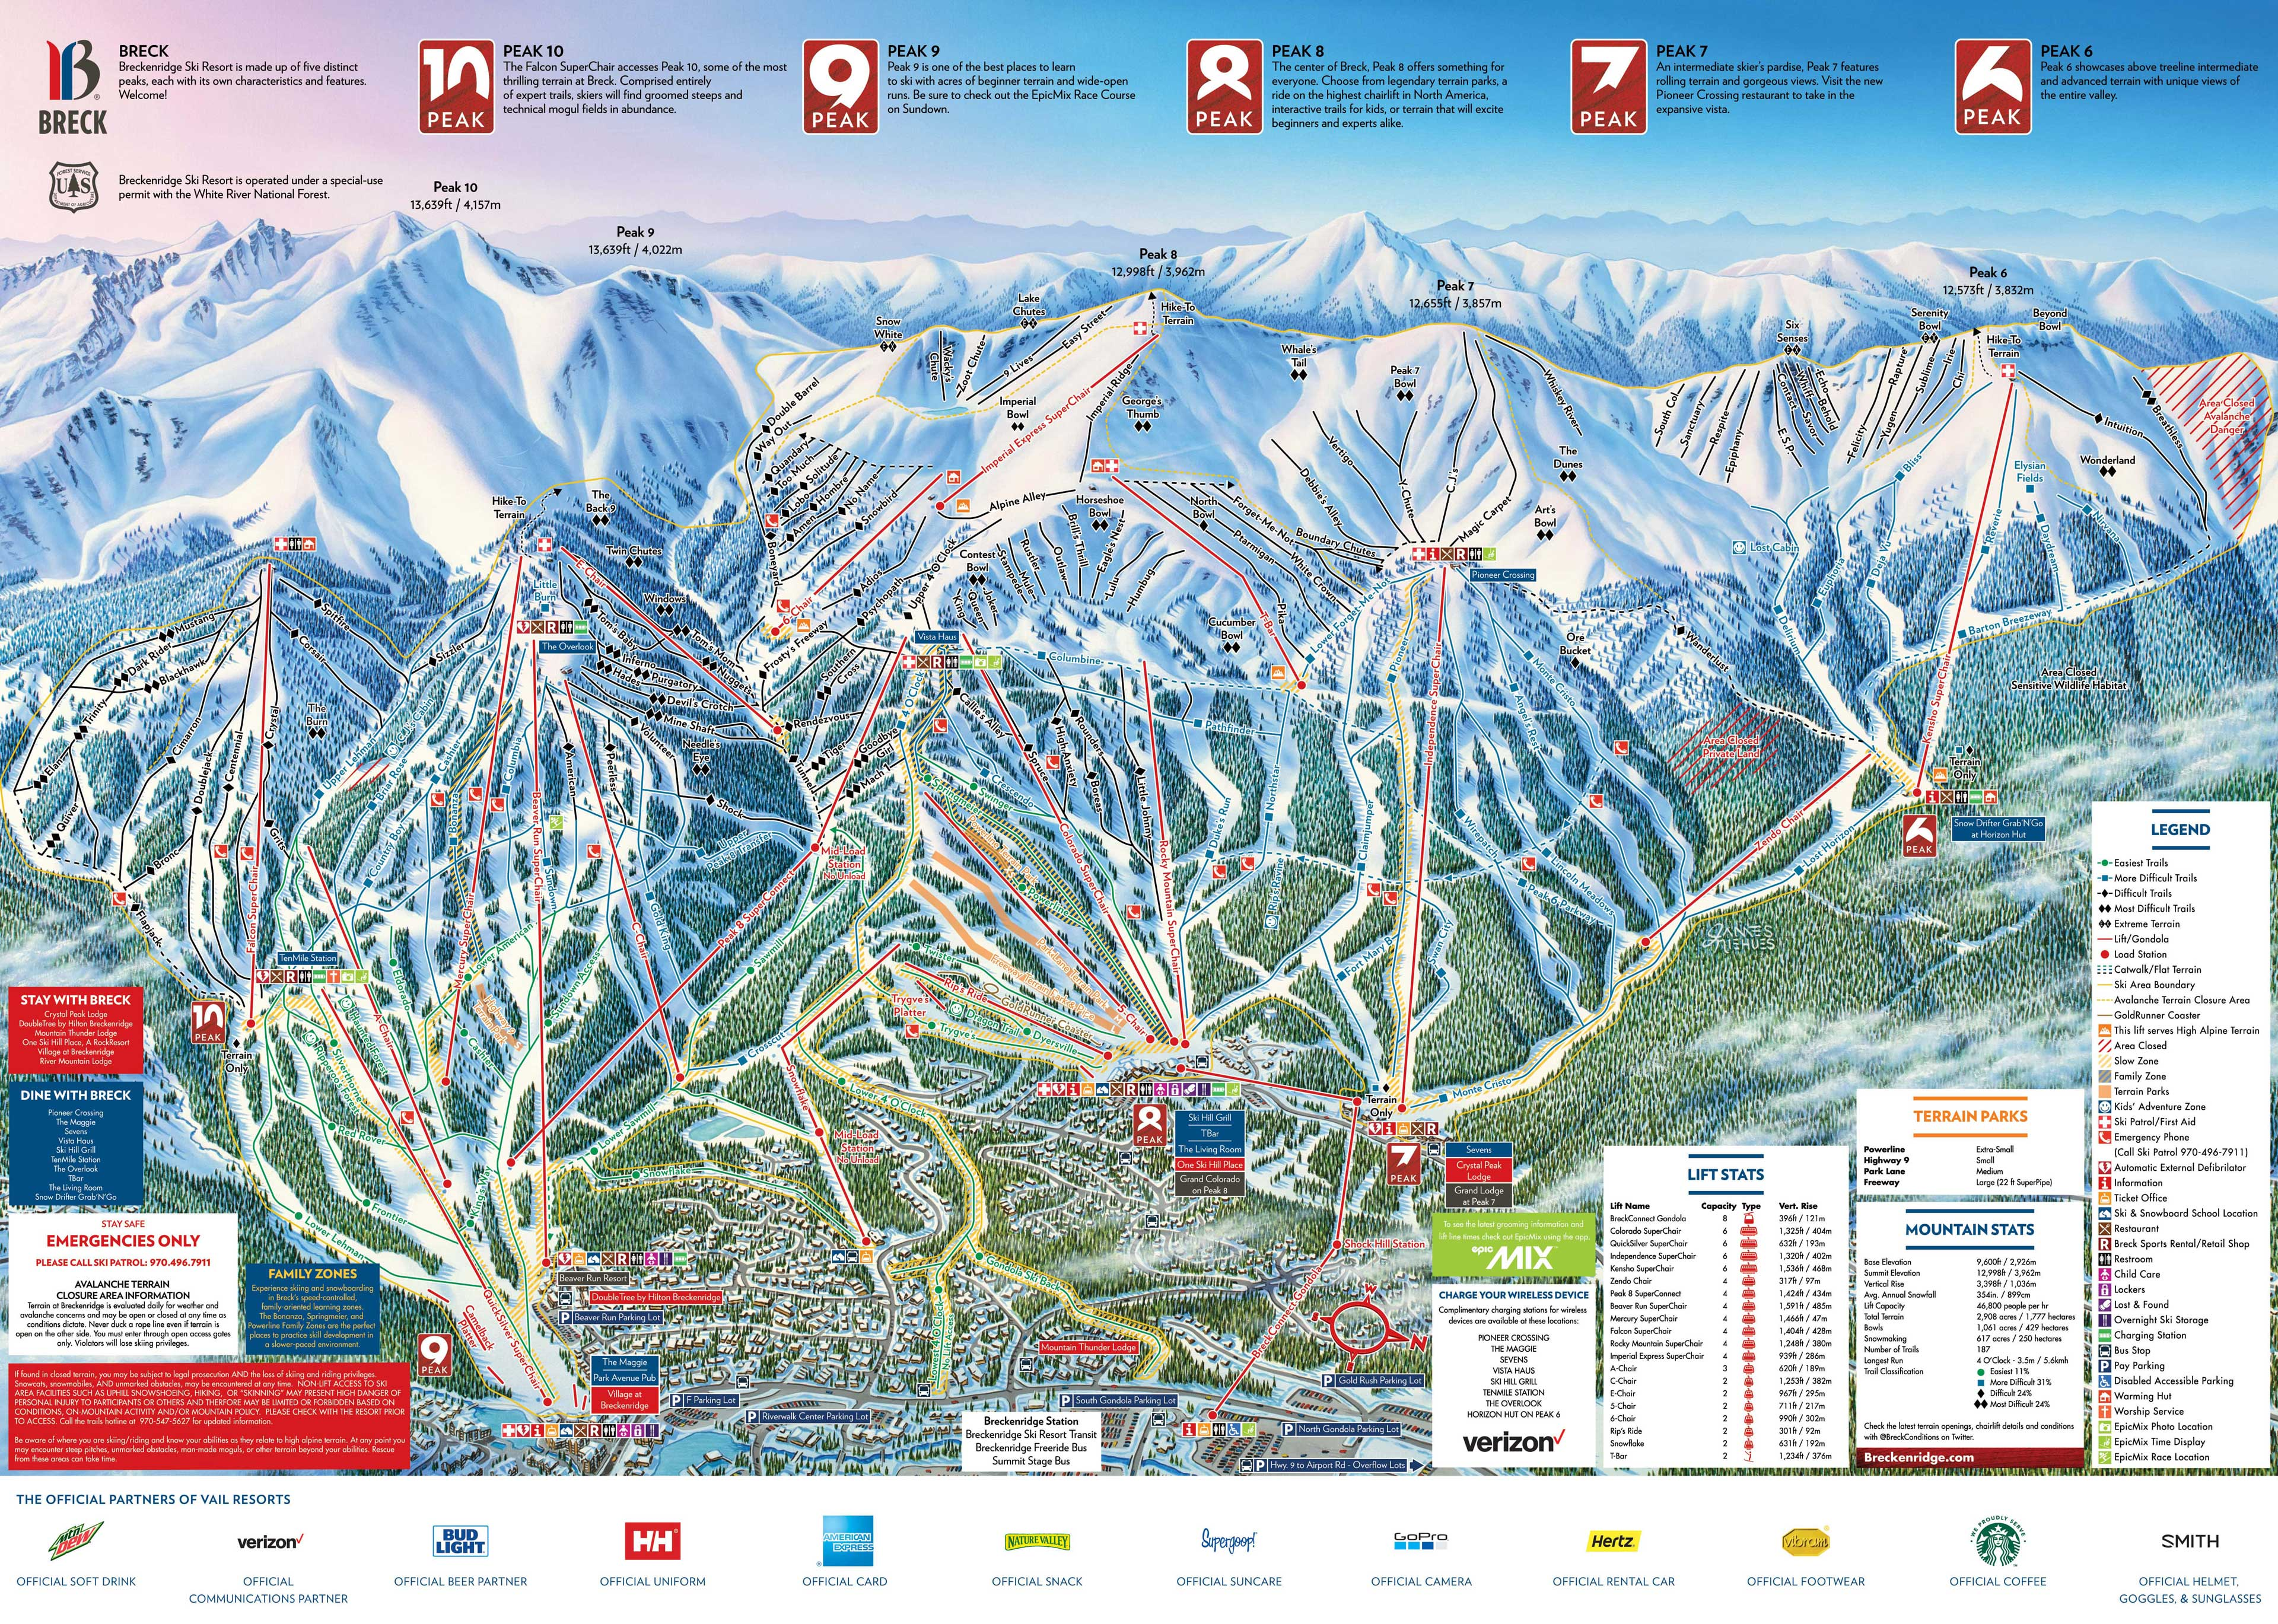 Colorado Ski Area Map Breckenridge Ski Resort   SkiMap.org